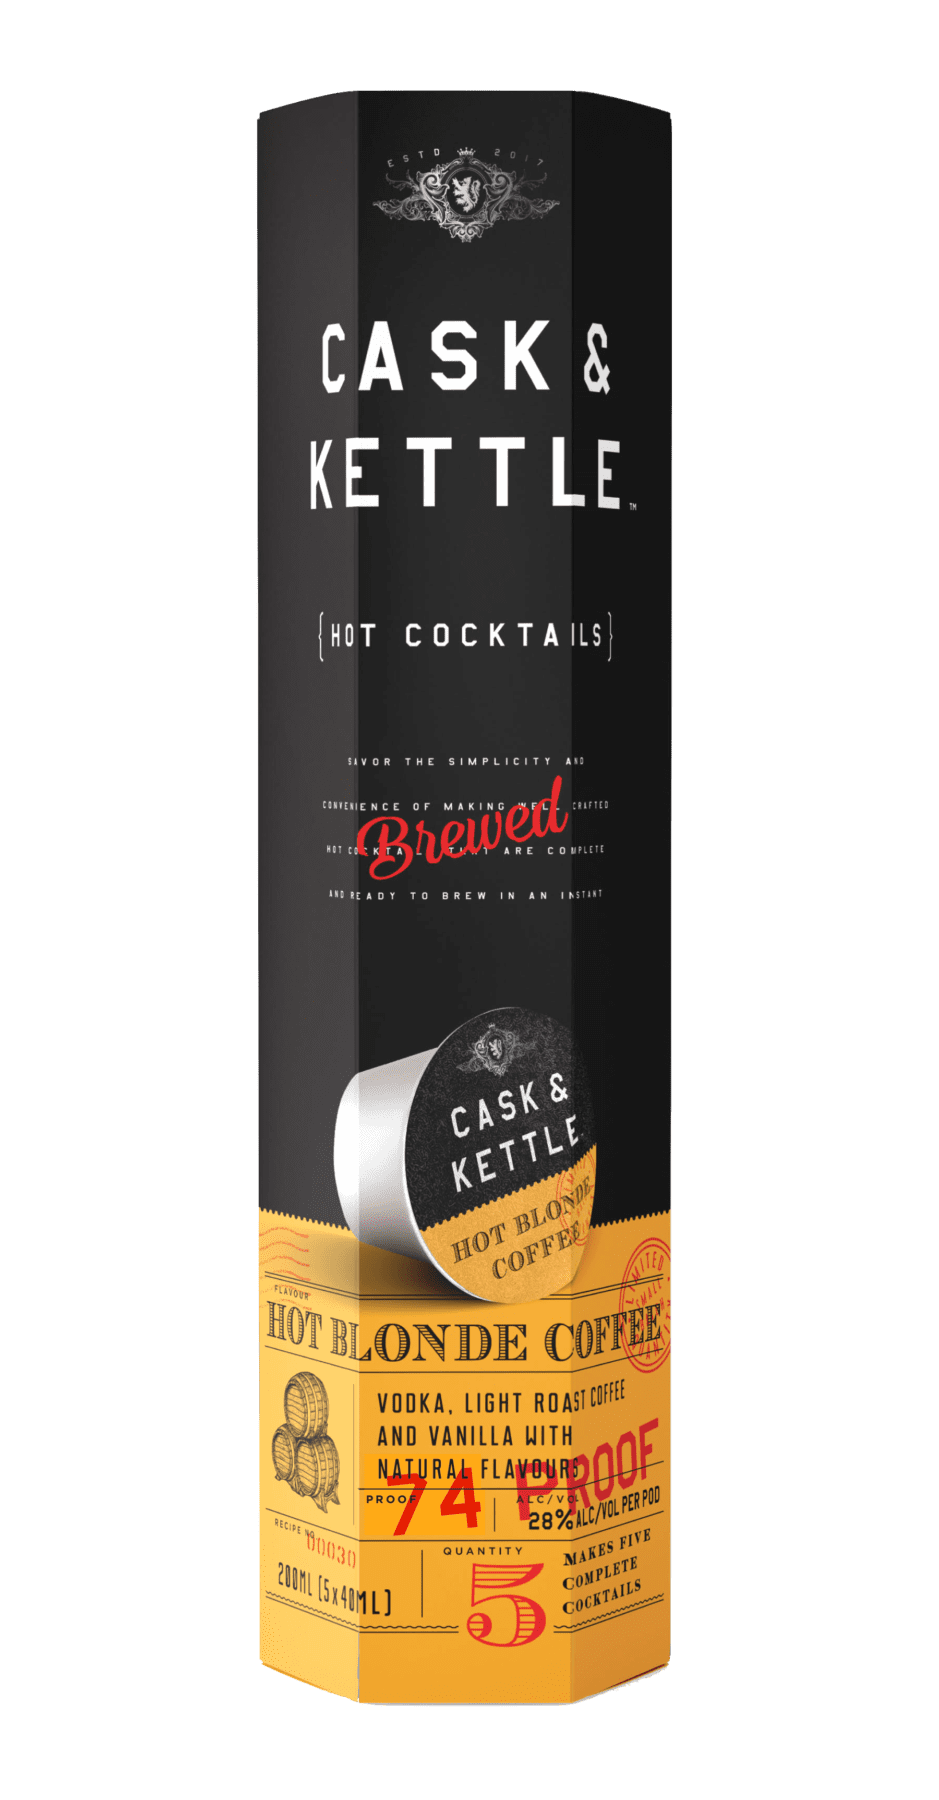 Our Cocktails - Cask & Kettle